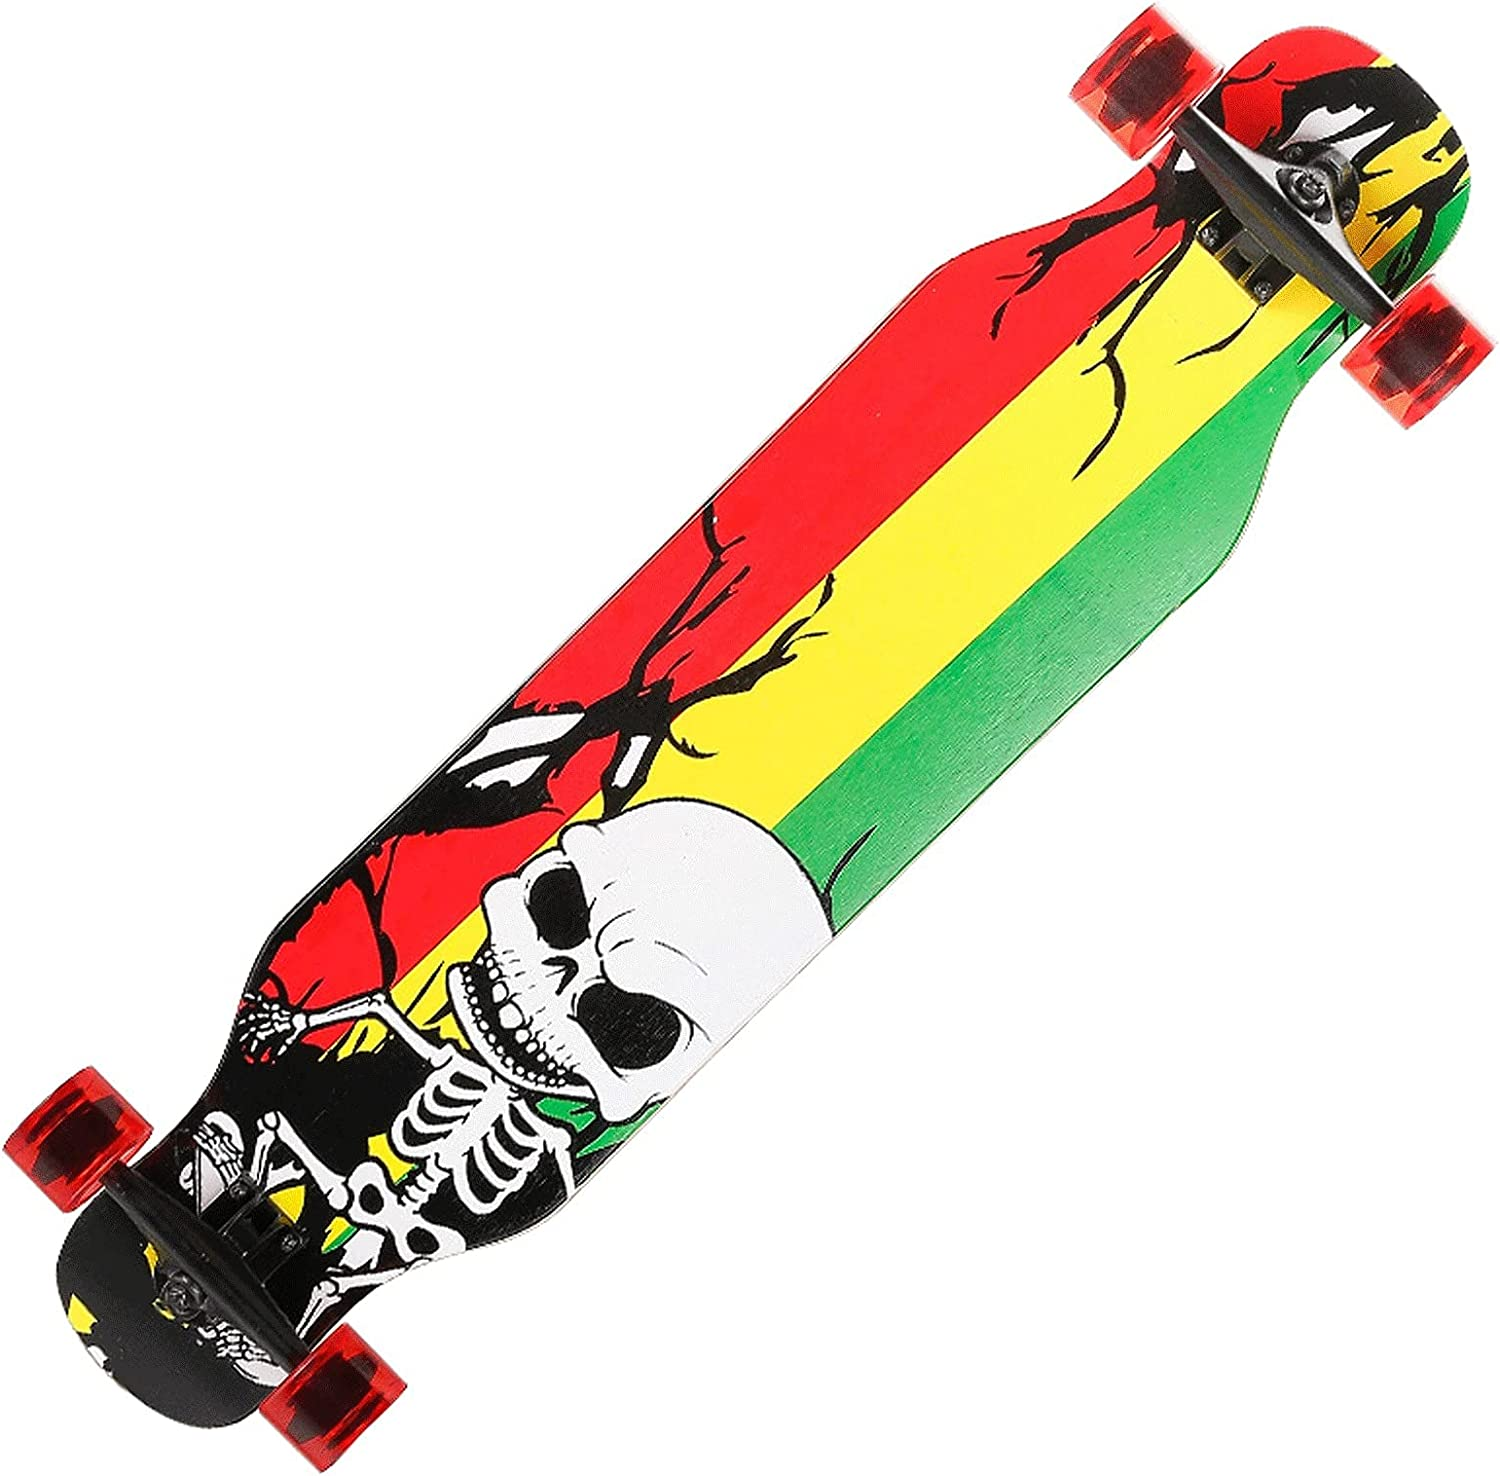 EEGUAI Longboard Skateboard 42 inch Layer Maple Longb Complete Ranking TOP13 Courier shipping free 9